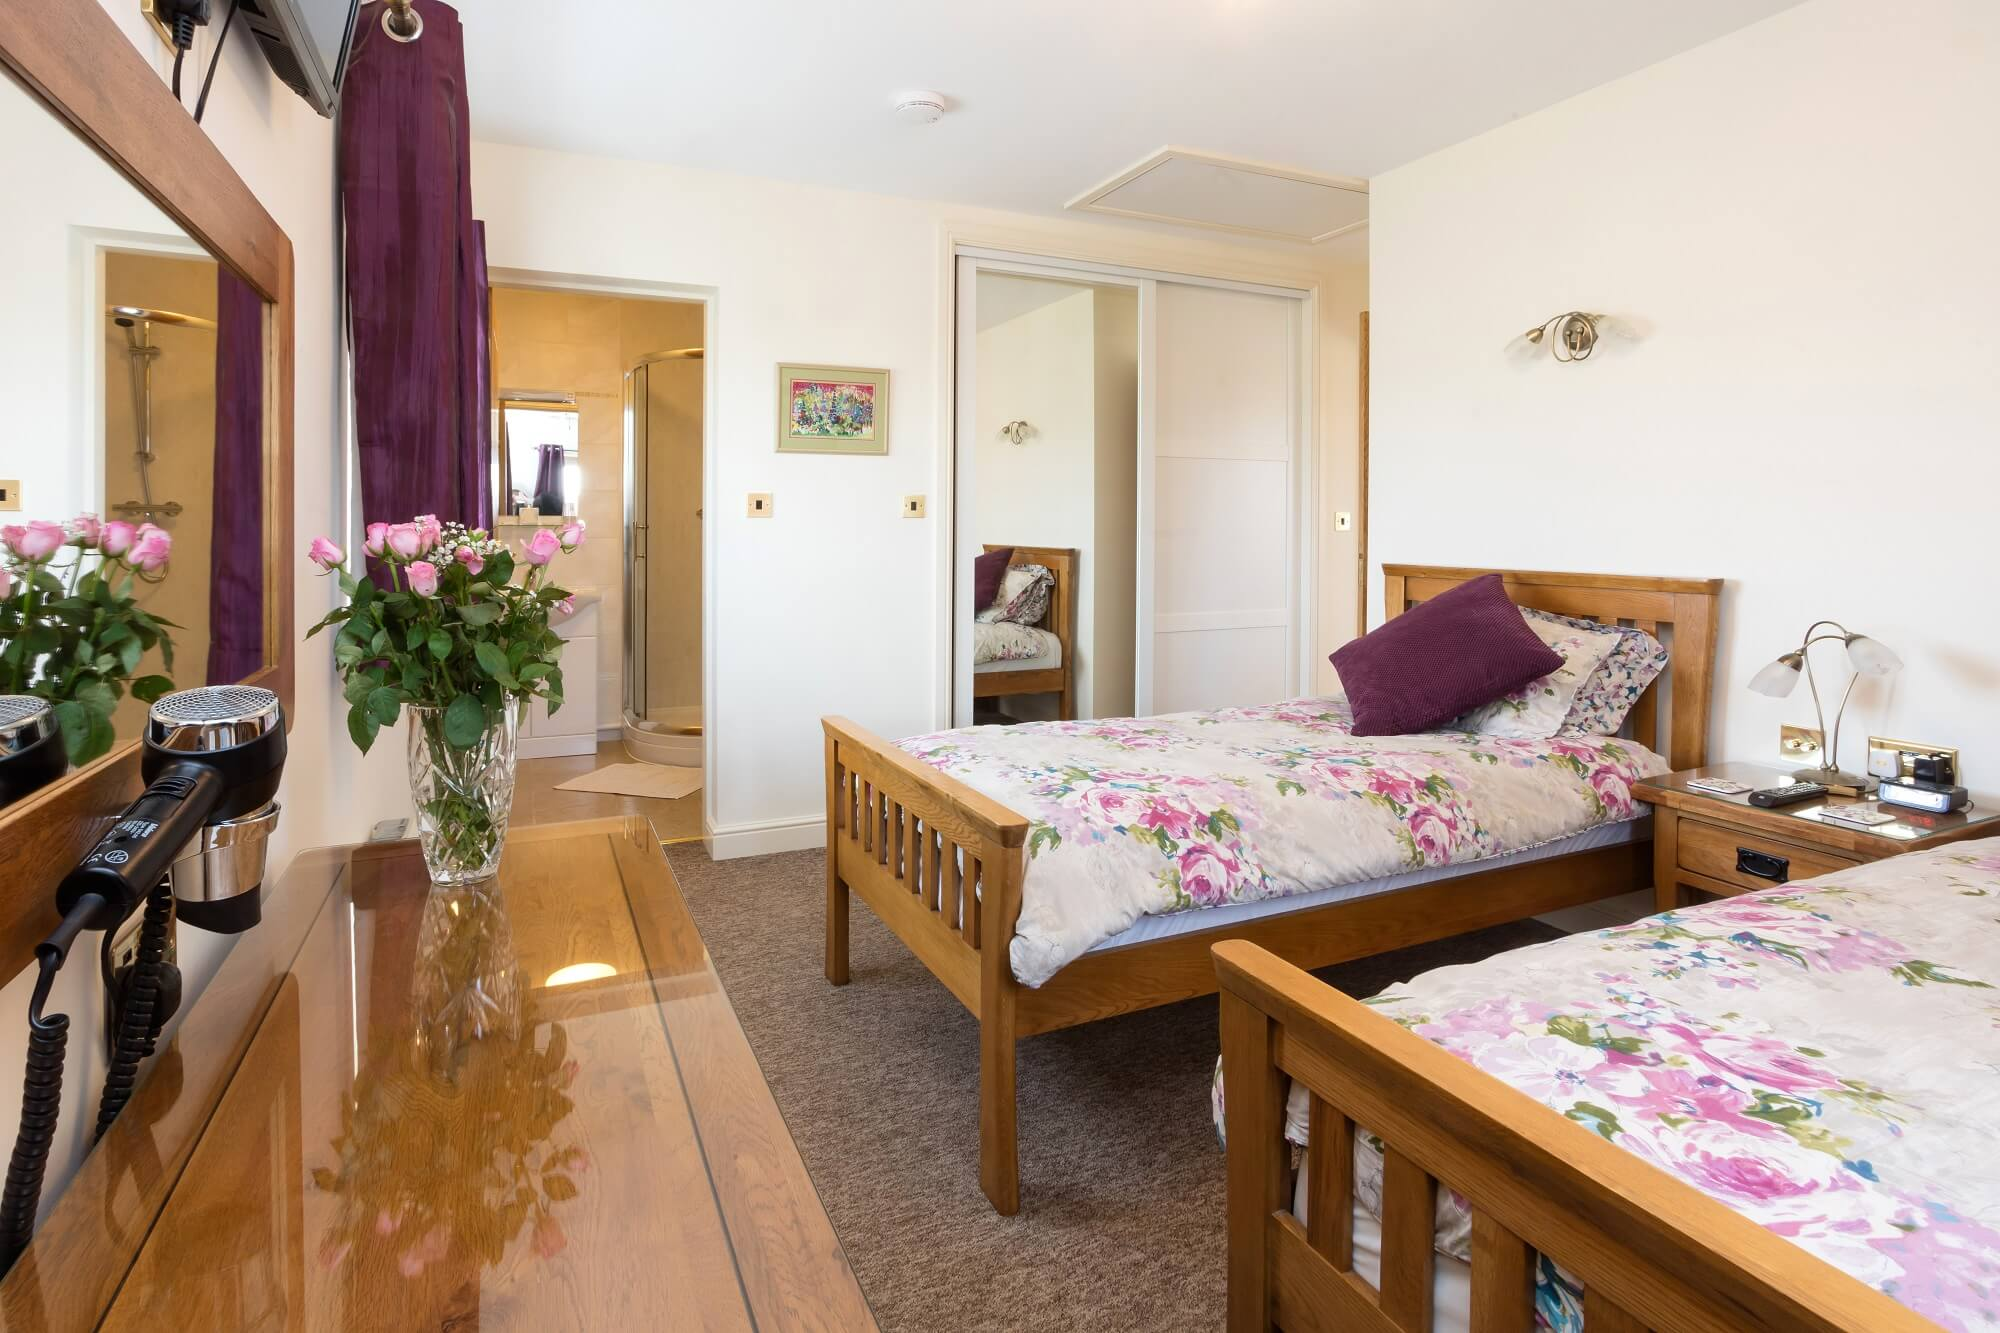 twin bed room at Redhouse Farm Bed & Breakfast in Lincolnshire